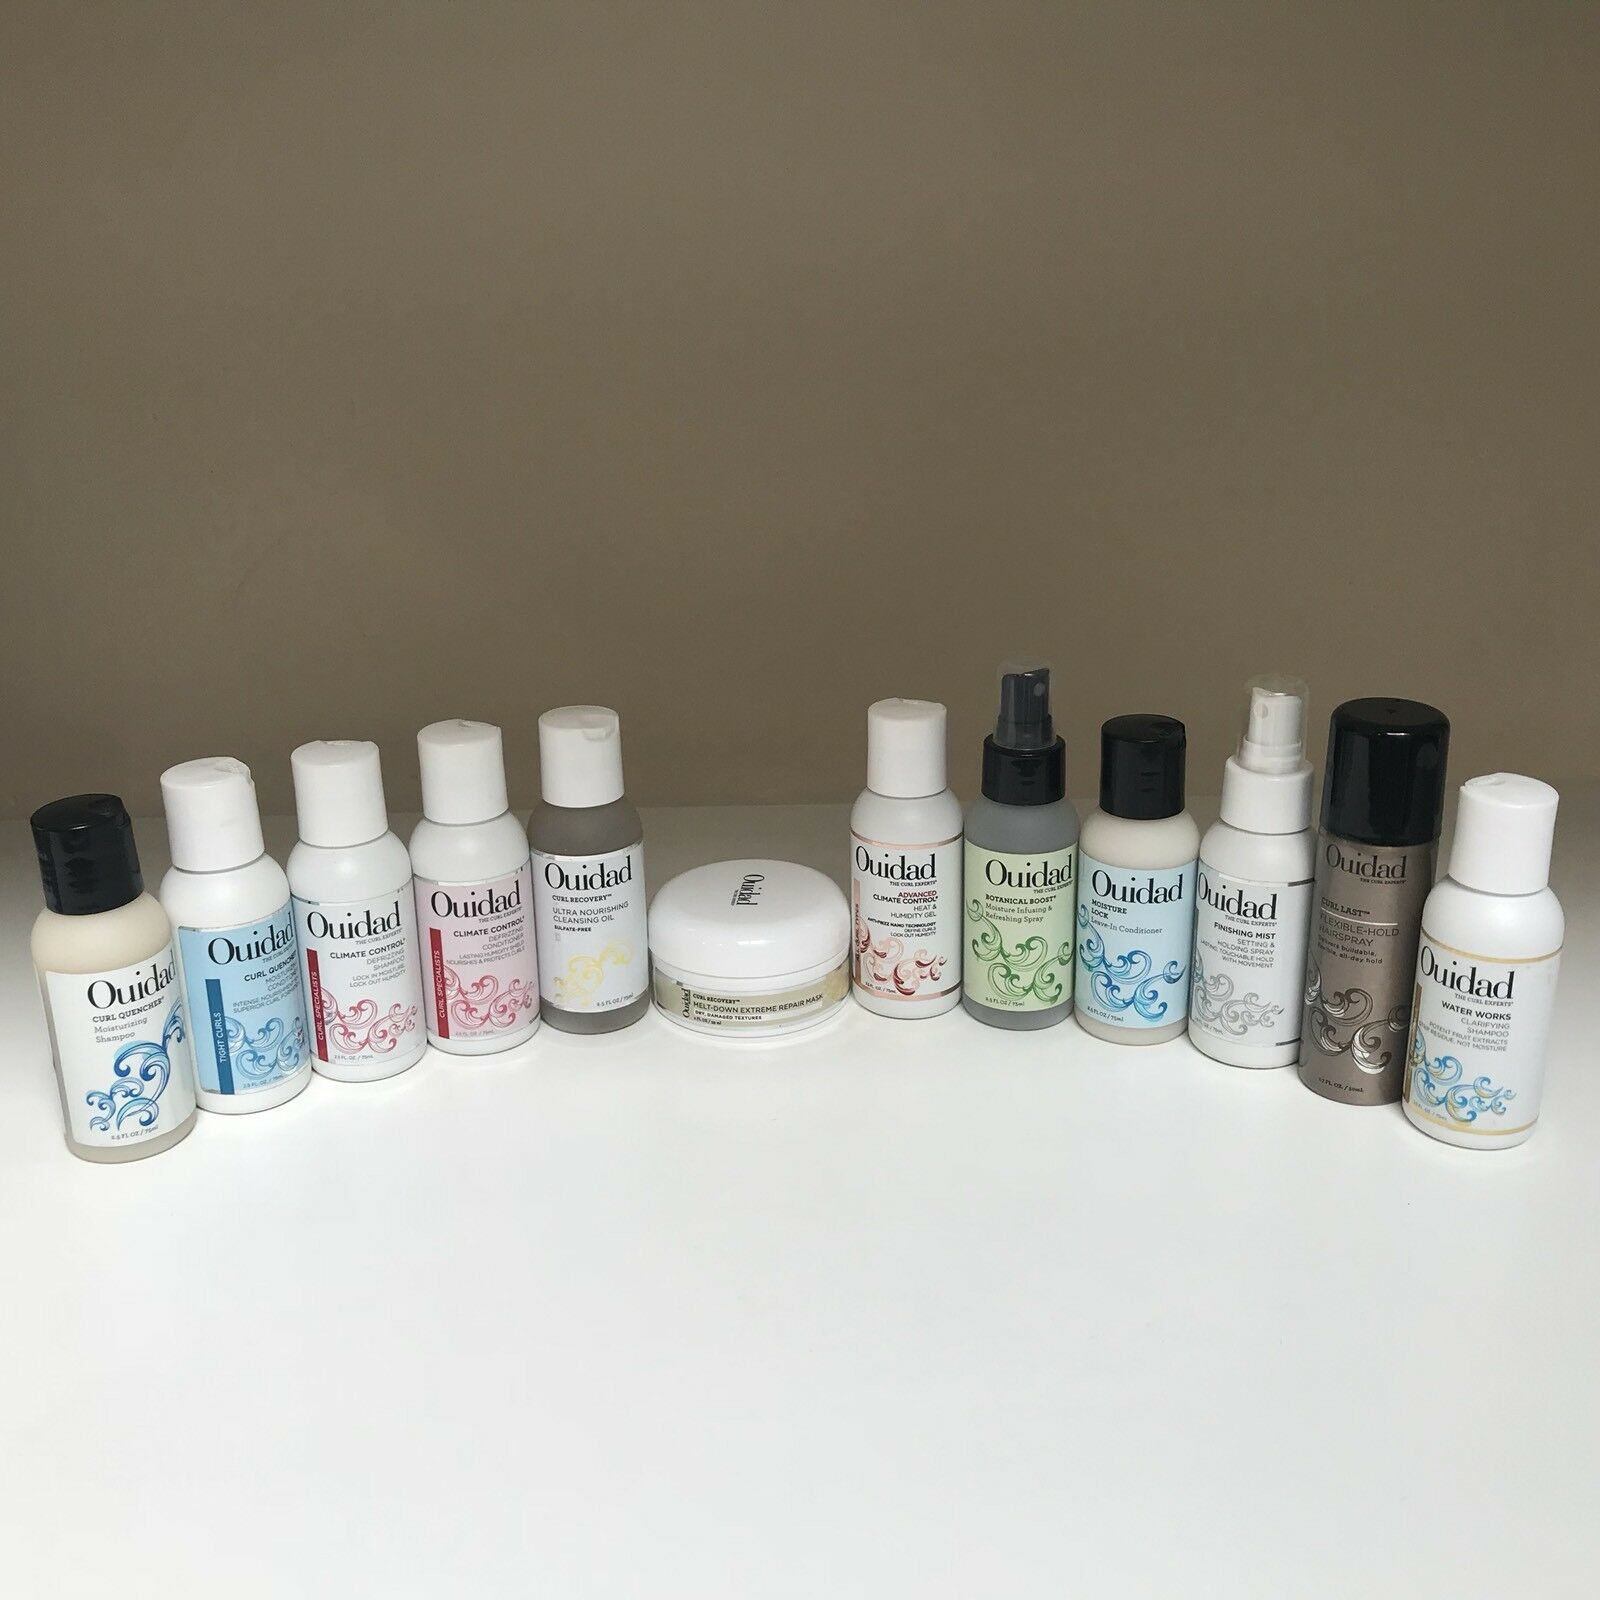 Ouidad Travel Size-You Choose!-Curl Last, Climate Control, M